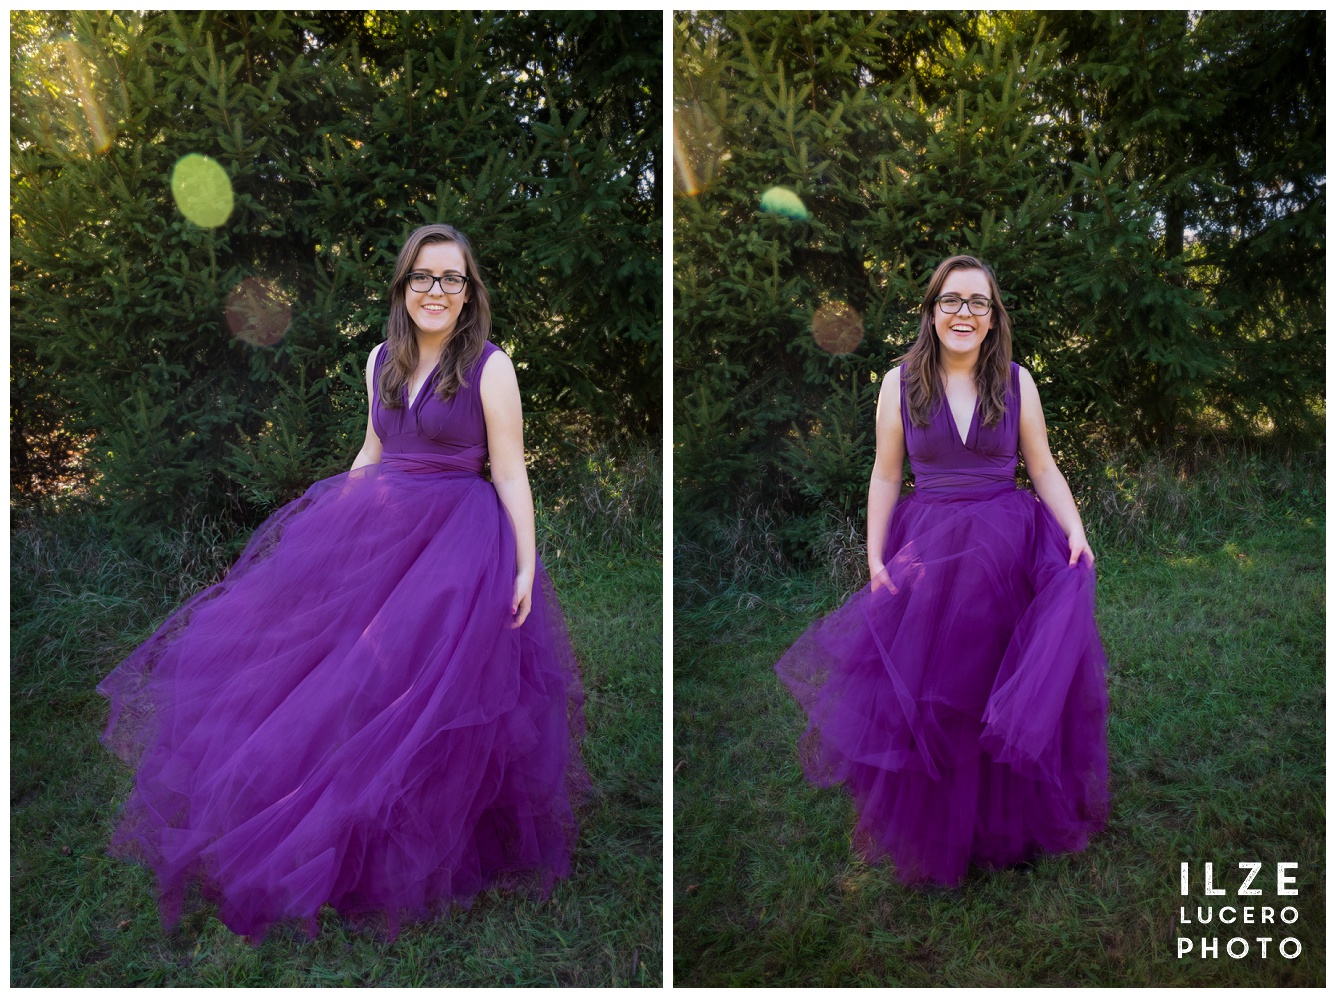 Dancing with a tulle skirt photo shoot